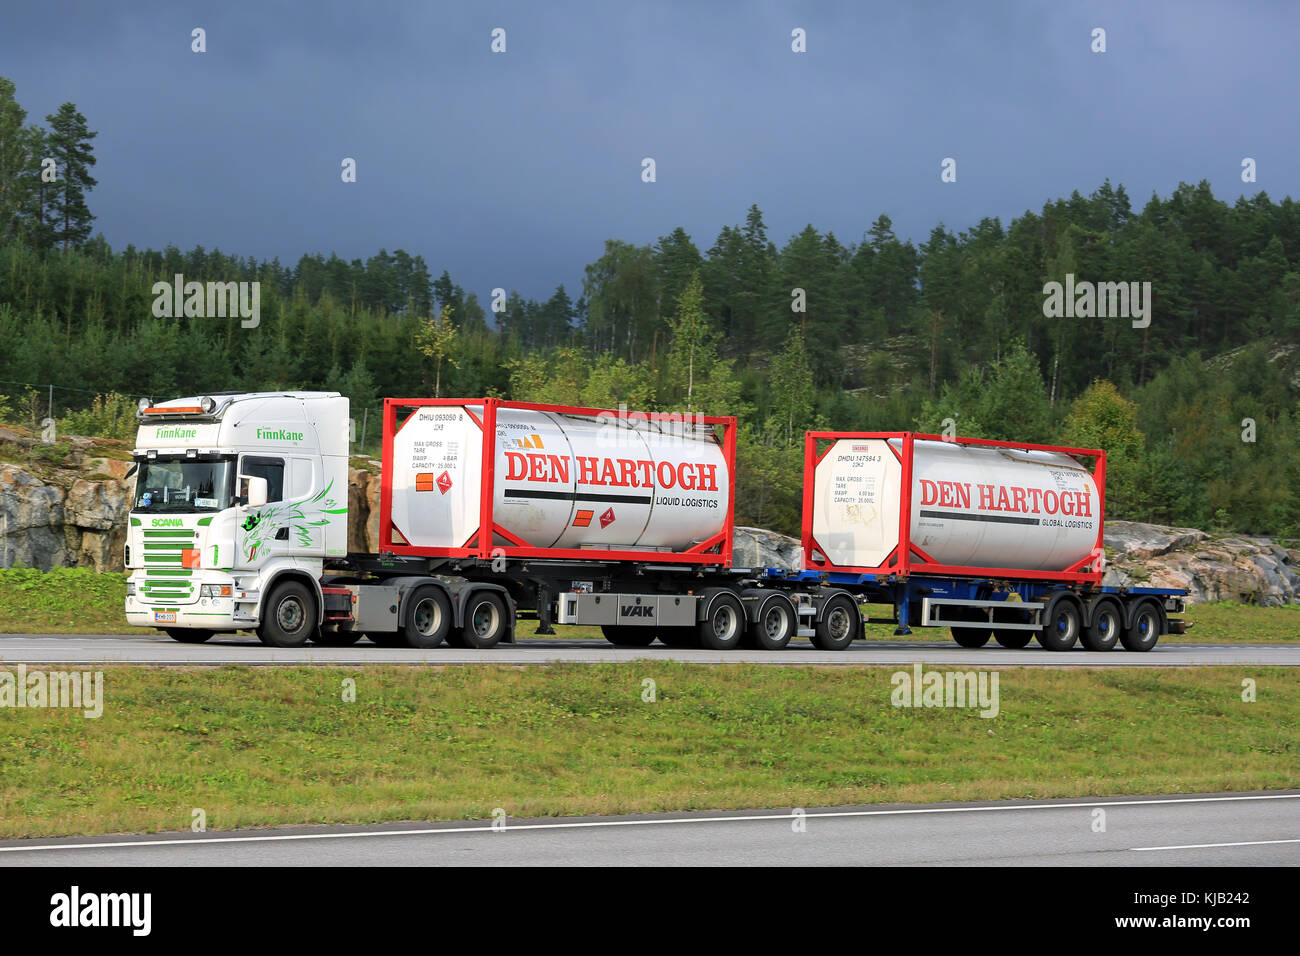 PAIMIO, FINLAND - AUGUST 26, 2016: Scania R500 of Team Finnkane Oy transports two Den Hartogh liquid containers - Stock Image